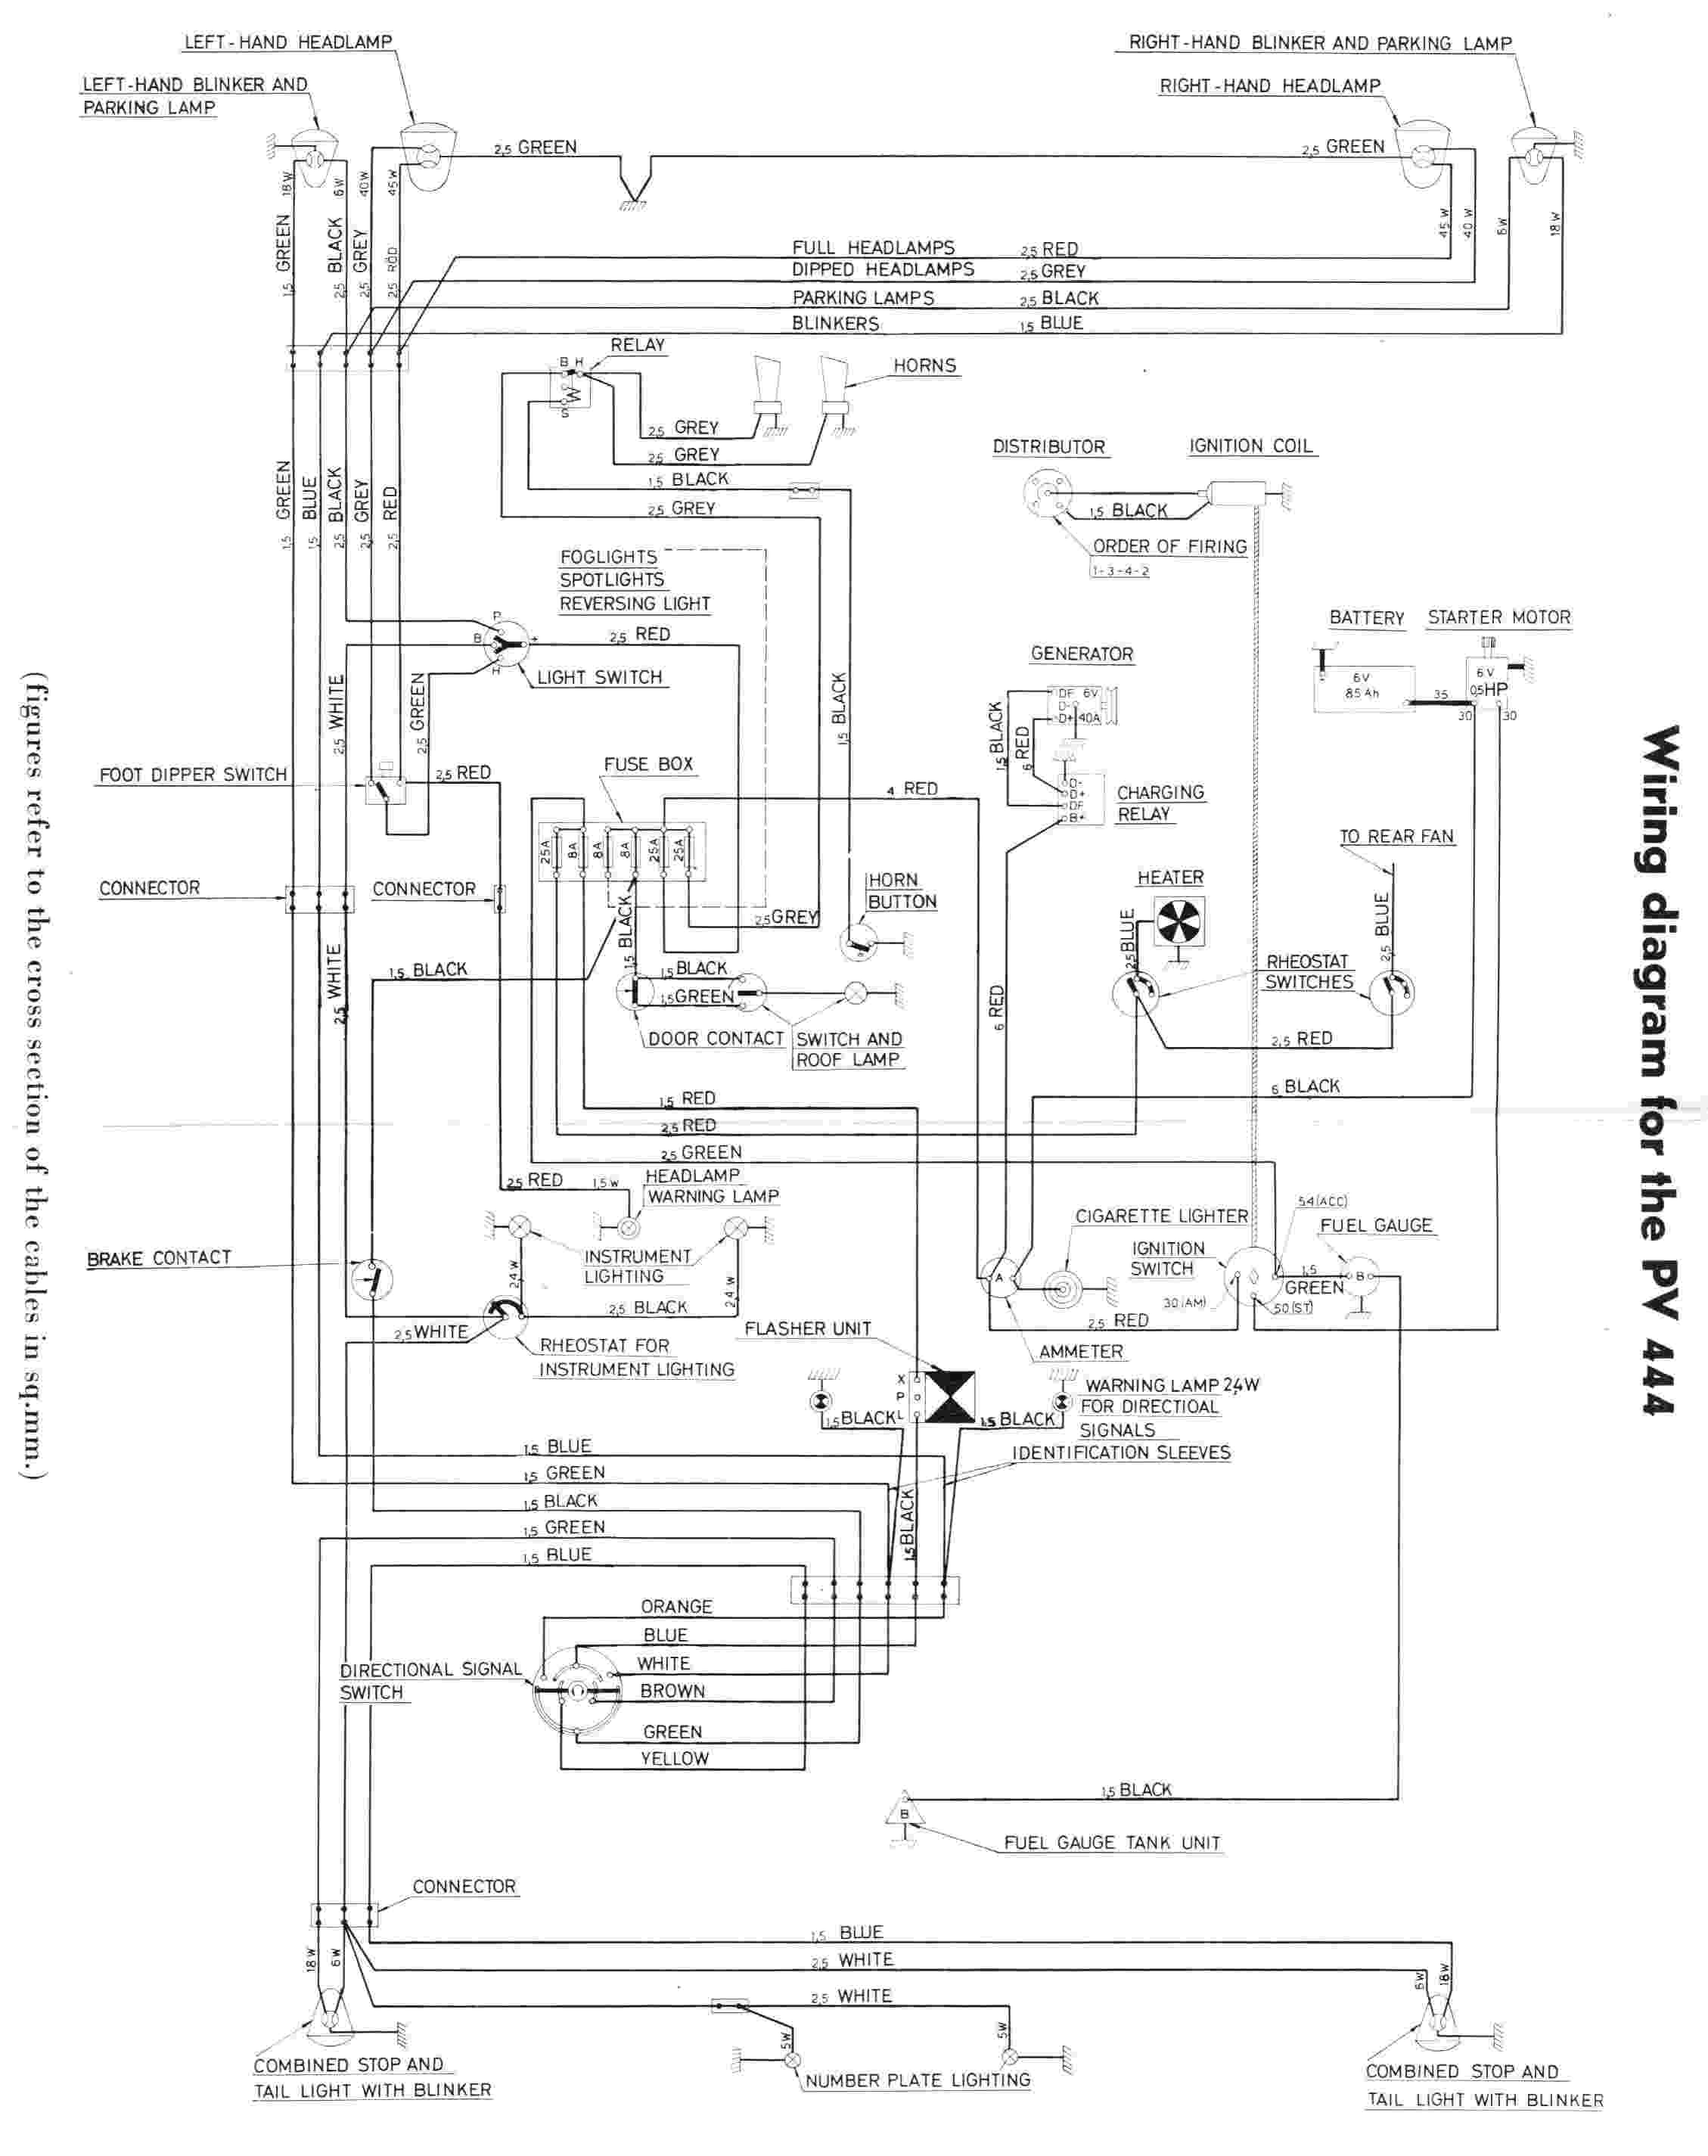 electrical wiring diagram of volvo pv444?resize=665%2C839&ssl=1 citroen relay rear light wiring diagram wiring diagram citroen relay rear light wiring diagram at crackthecode.co